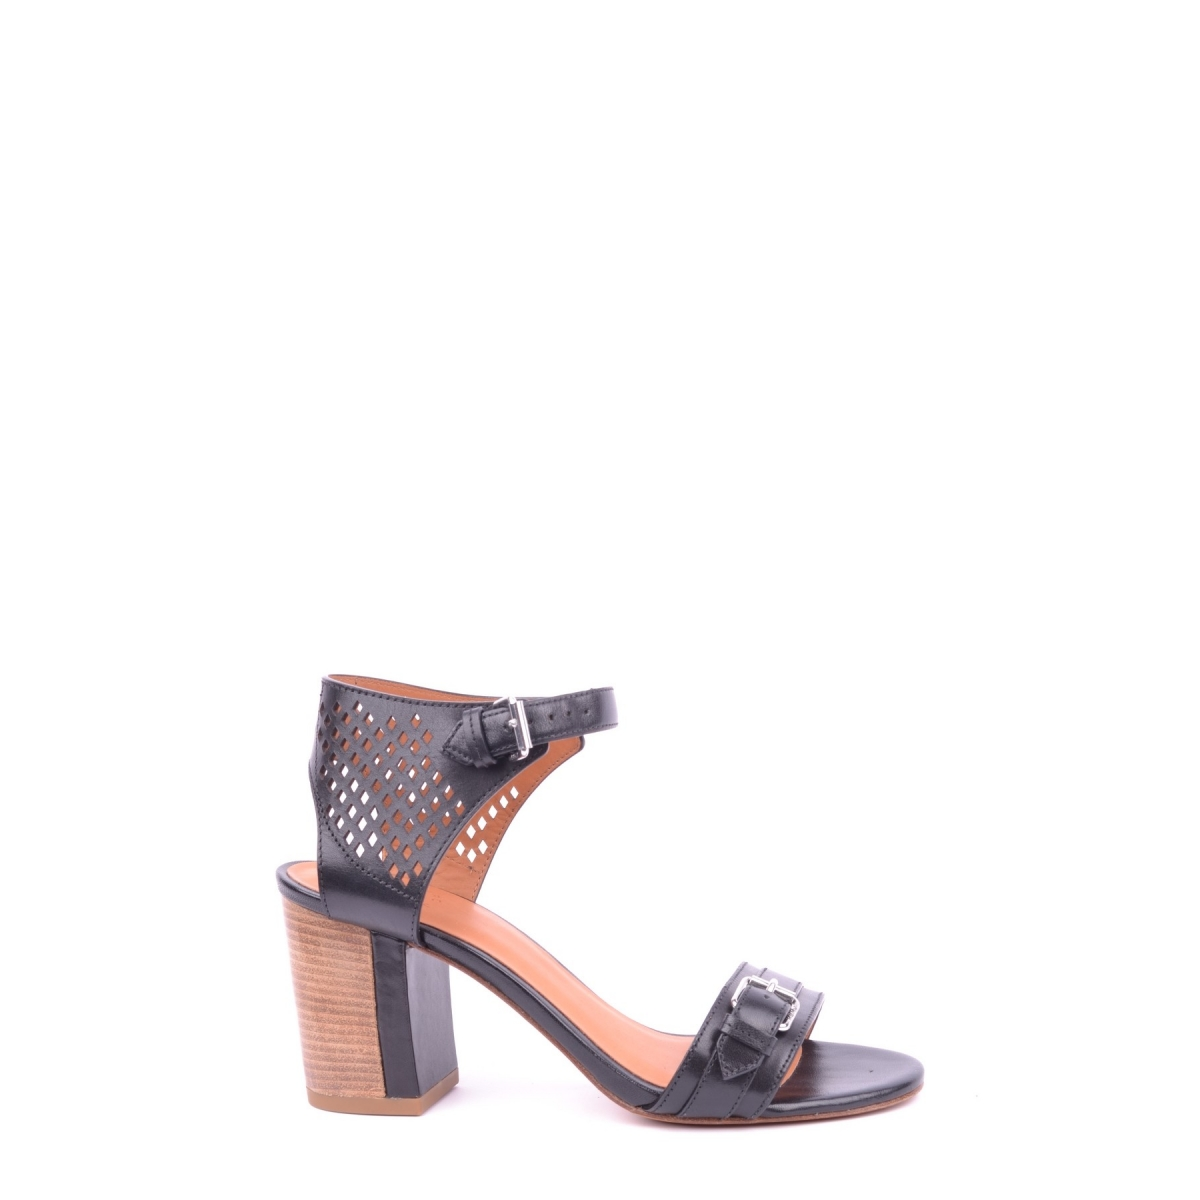 Marc by Marc Jacobs Scarpe PT859 16401IT -60%